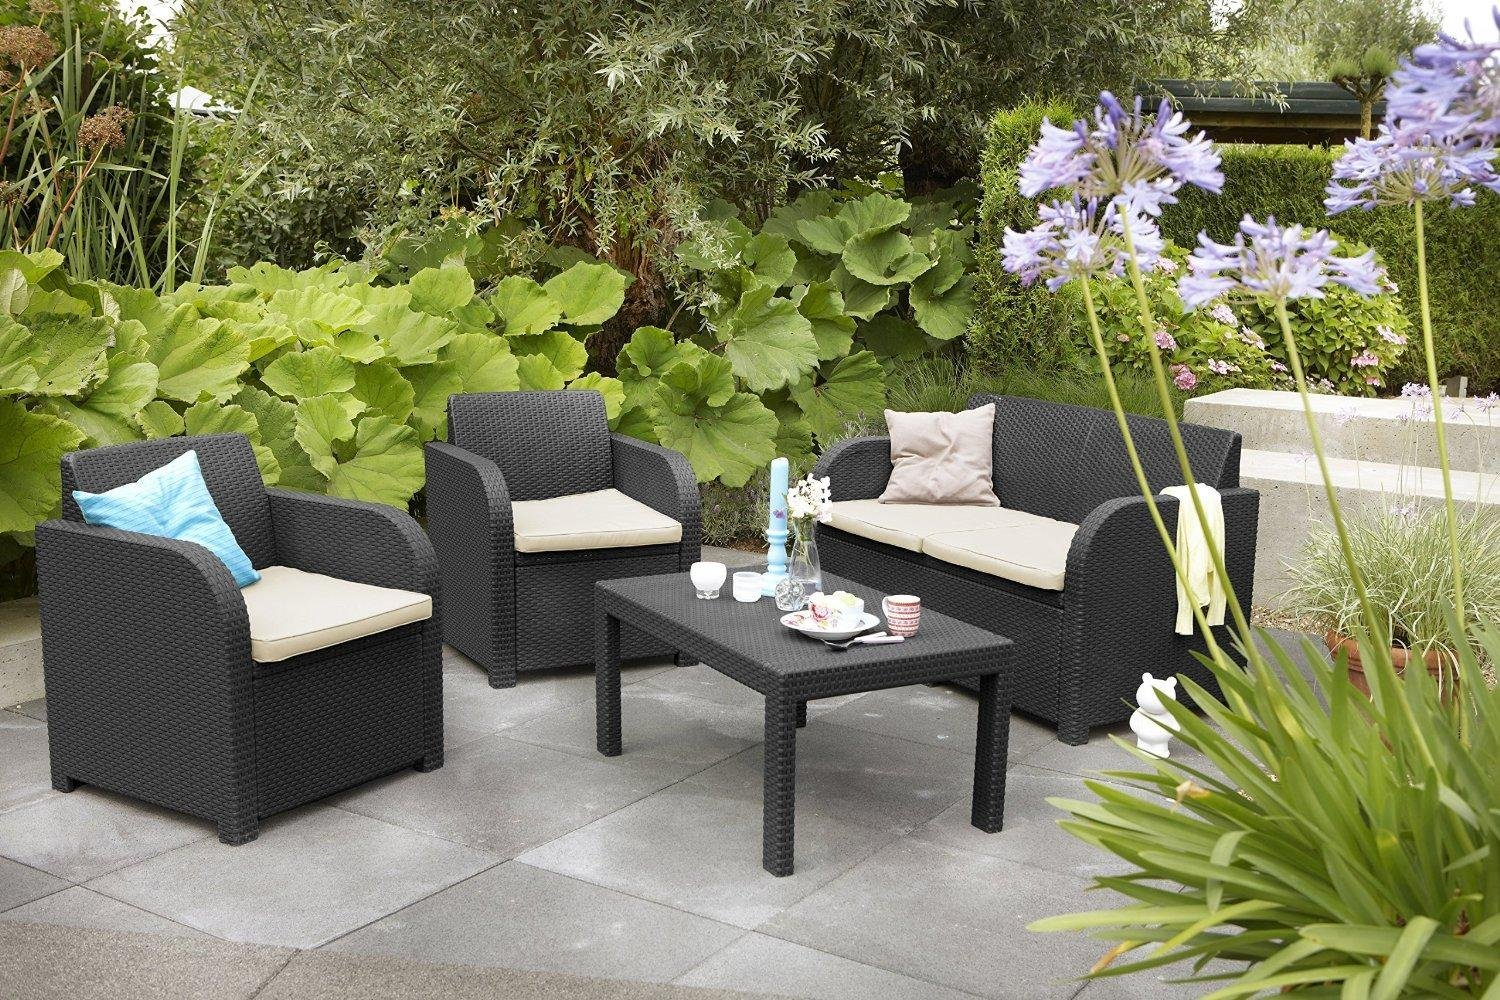 allibert keter carolina outdoor 4 seater rattan lounge garden furniture set new ebay. Black Bedroom Furniture Sets. Home Design Ideas